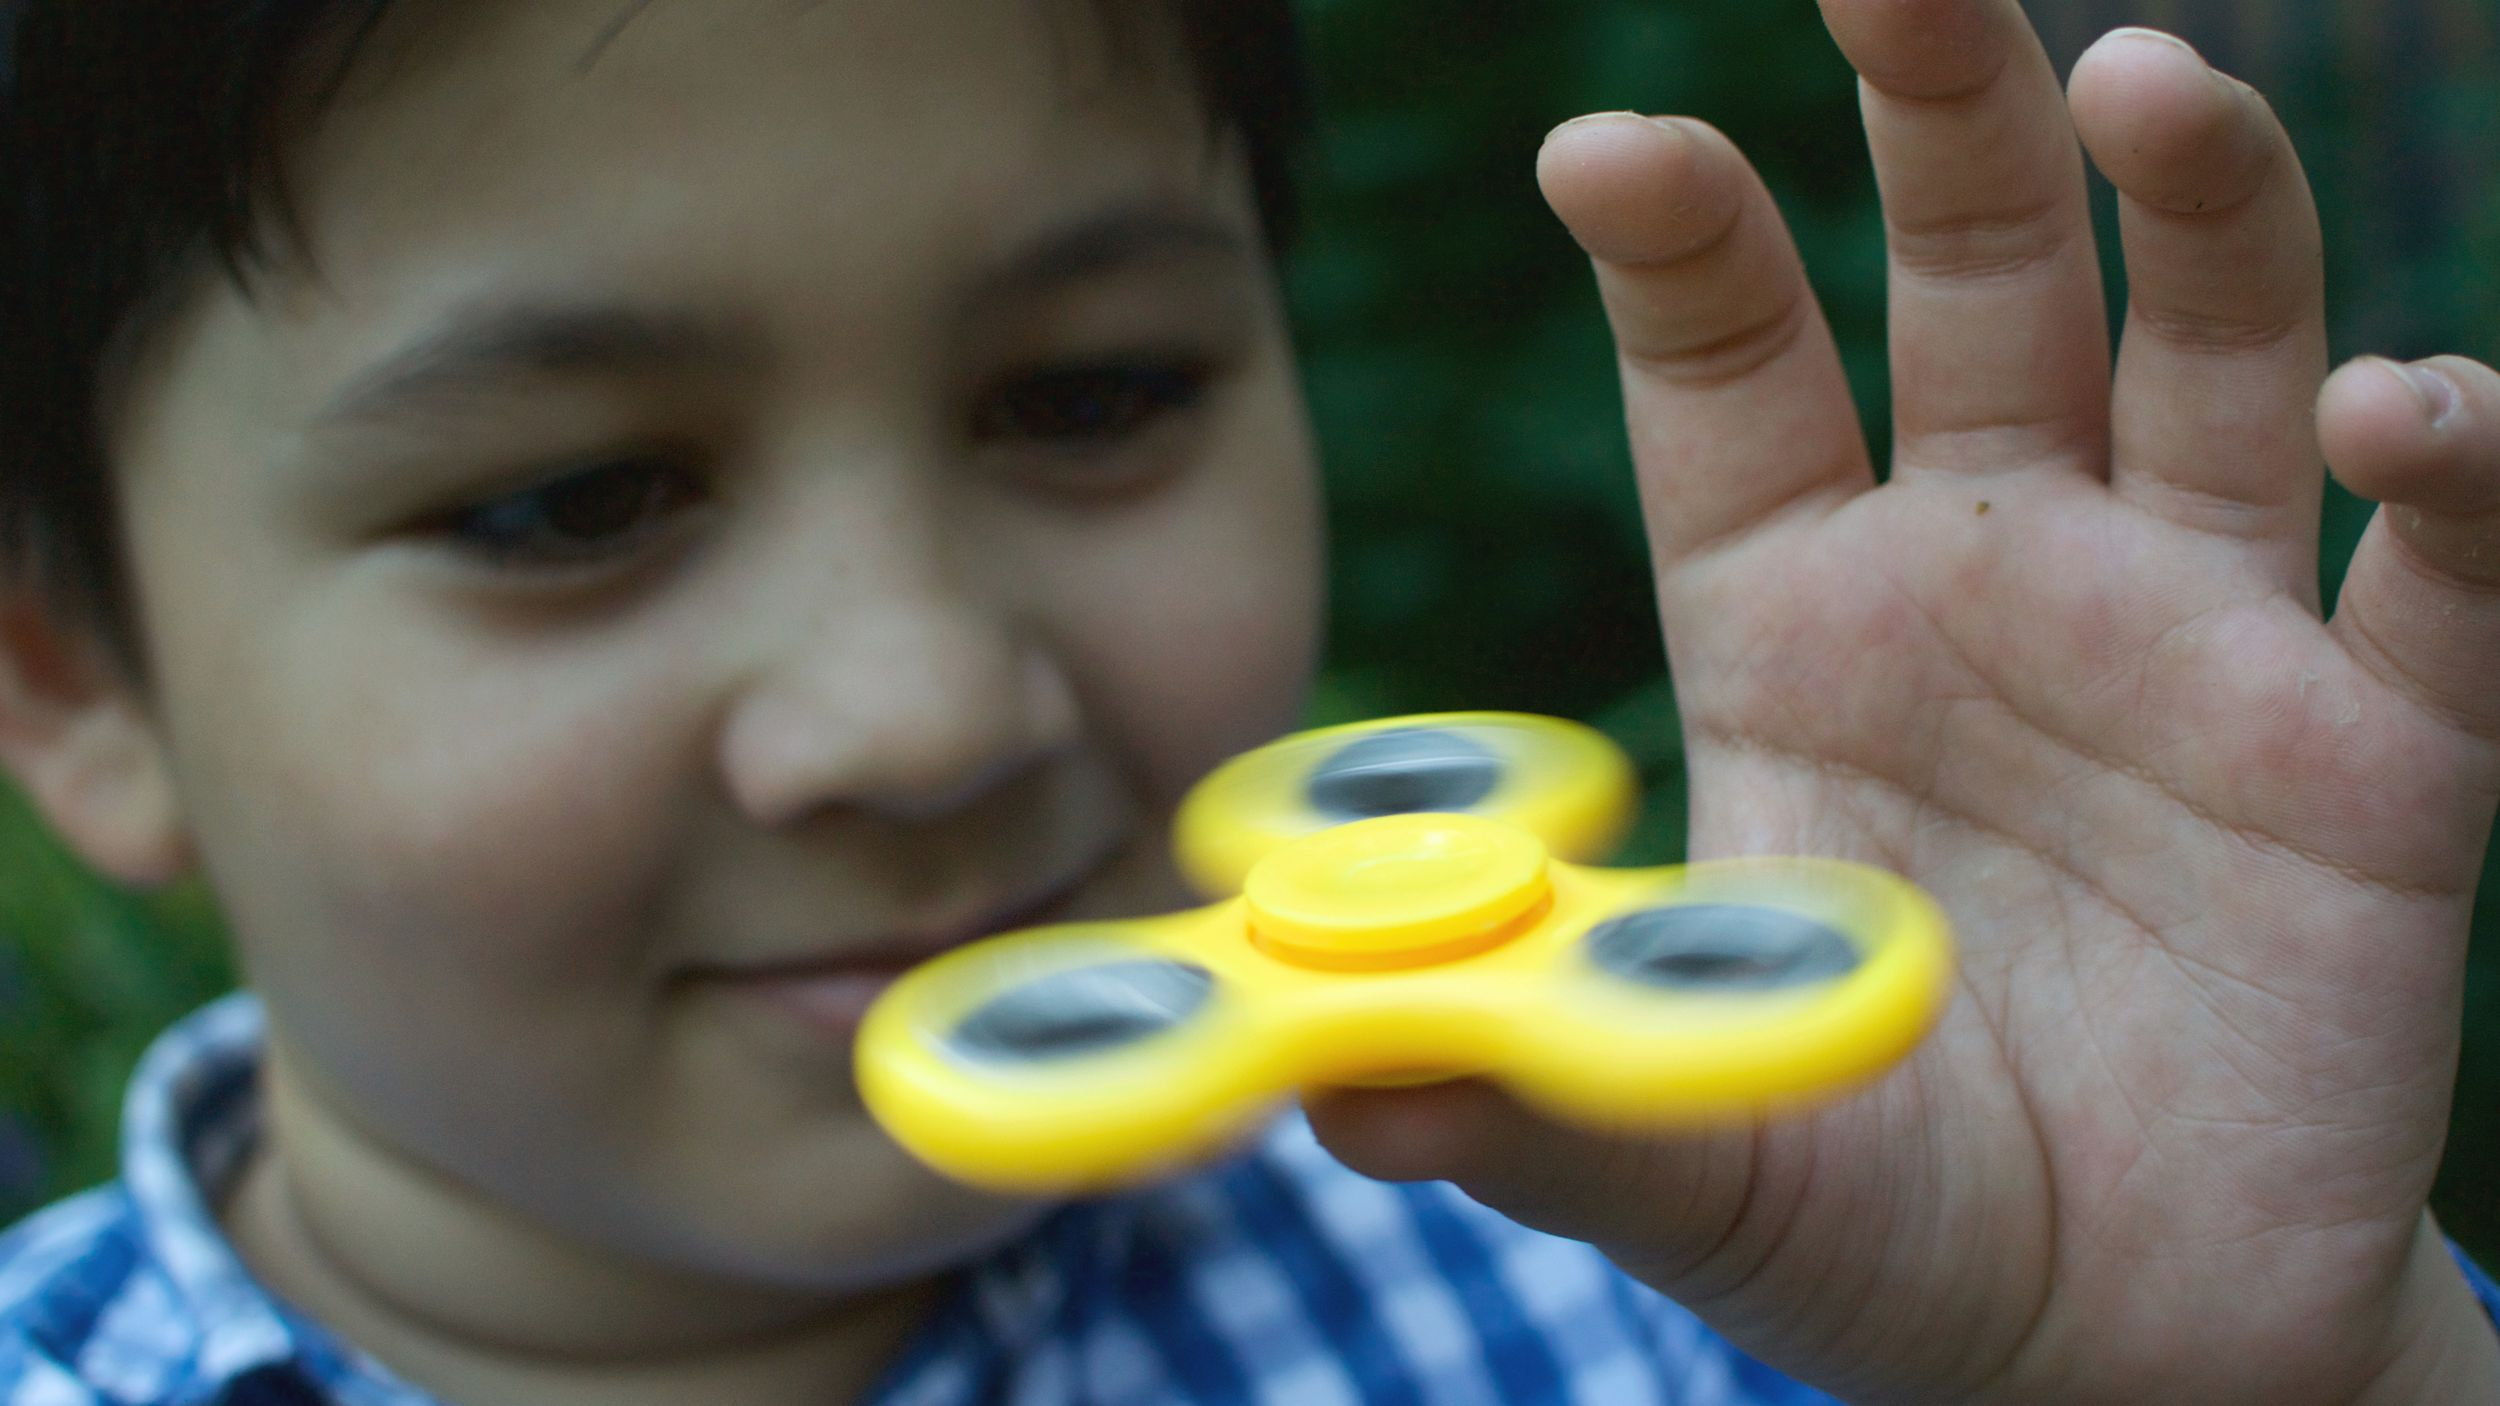 A boy plays with a fidget spinner in Moscow, Russia, on Wednesday, July 19, 2017. Russian authorities are investigating fidget spinners after state television reported that opposition activists are using them to attract supporters.